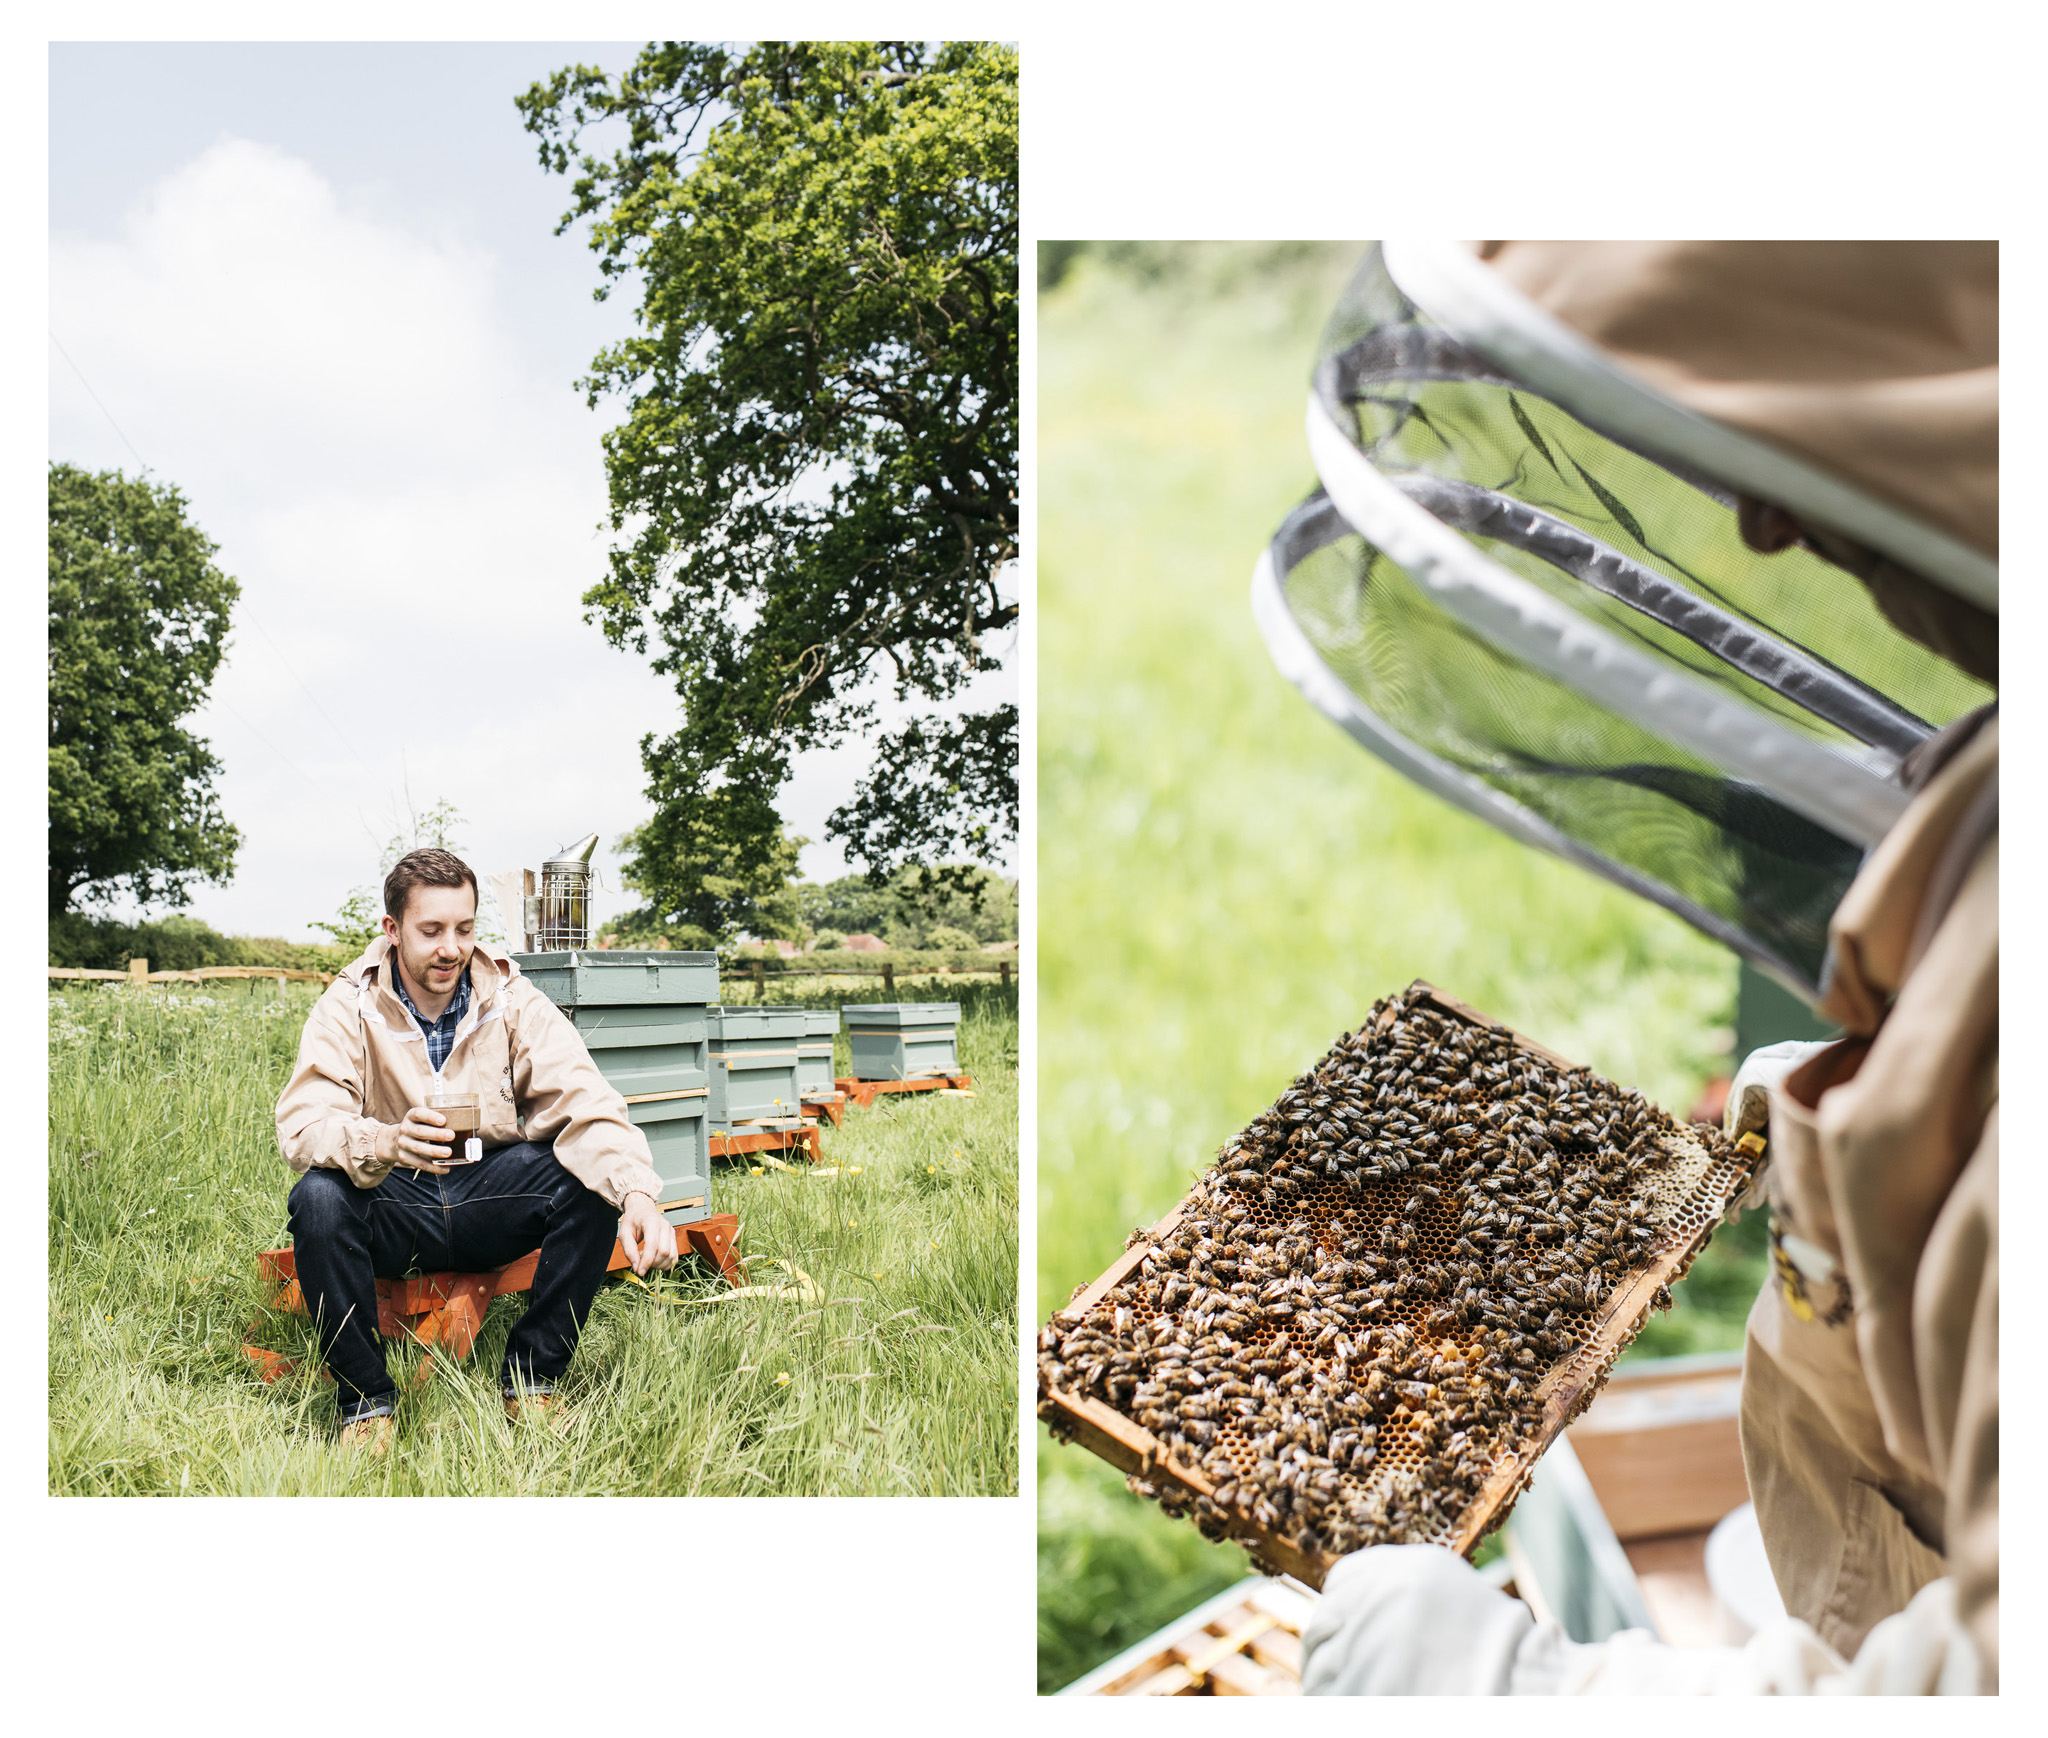 Adam Strawson is a beekeeper in Brighton and produces raw, unblended, local honey as well as selling quality honey from other small batch producers.